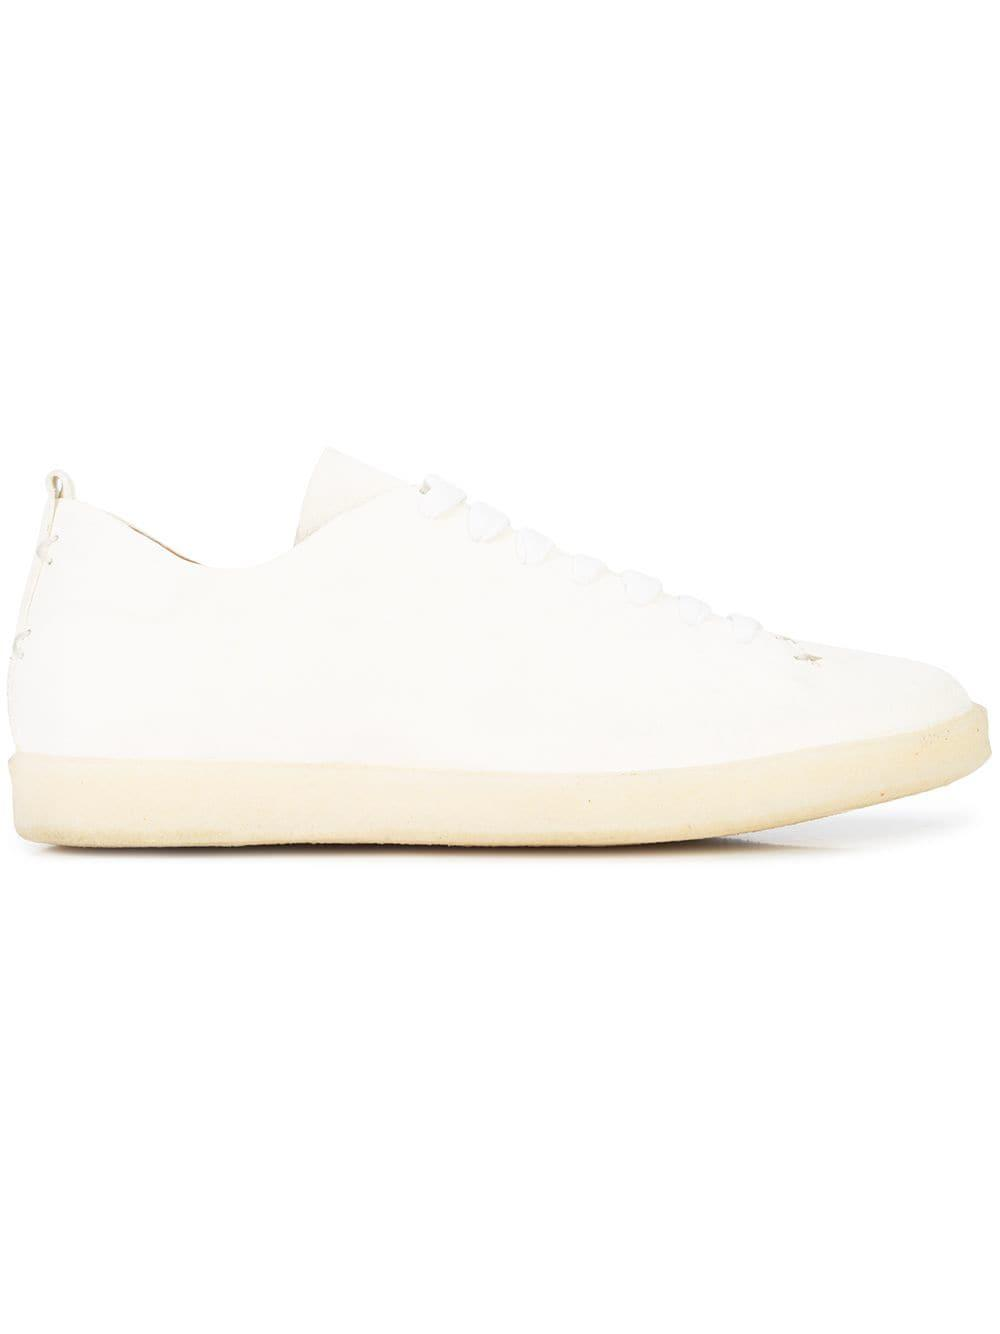 Silvano Sassetti Leather Classic Low-top Sneakers in White